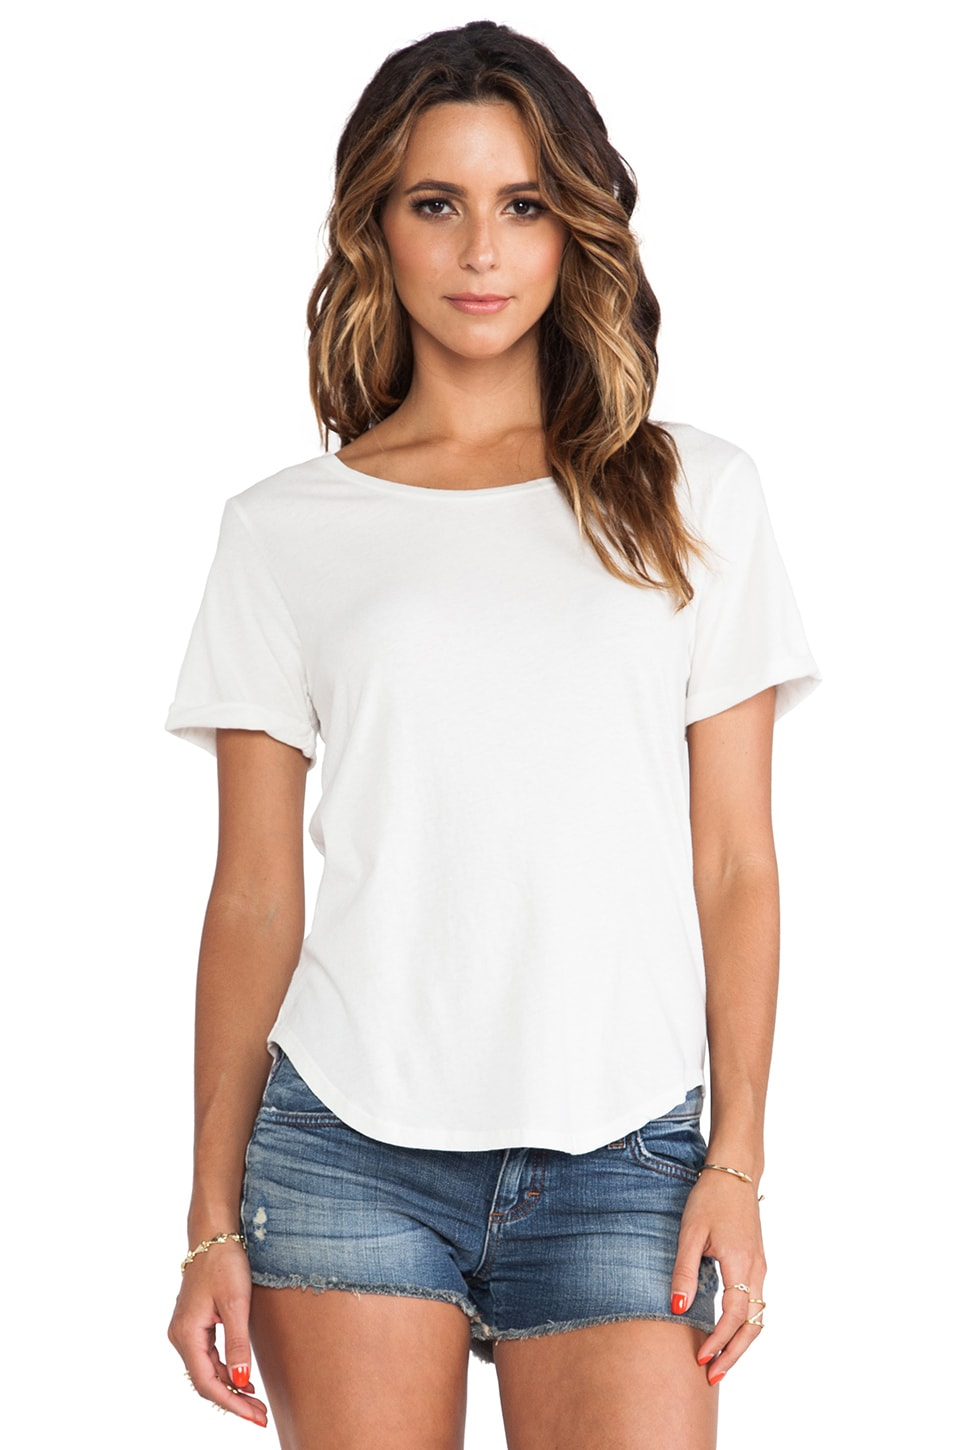 EVER Shirt Tail Short Sleeve Tee in White